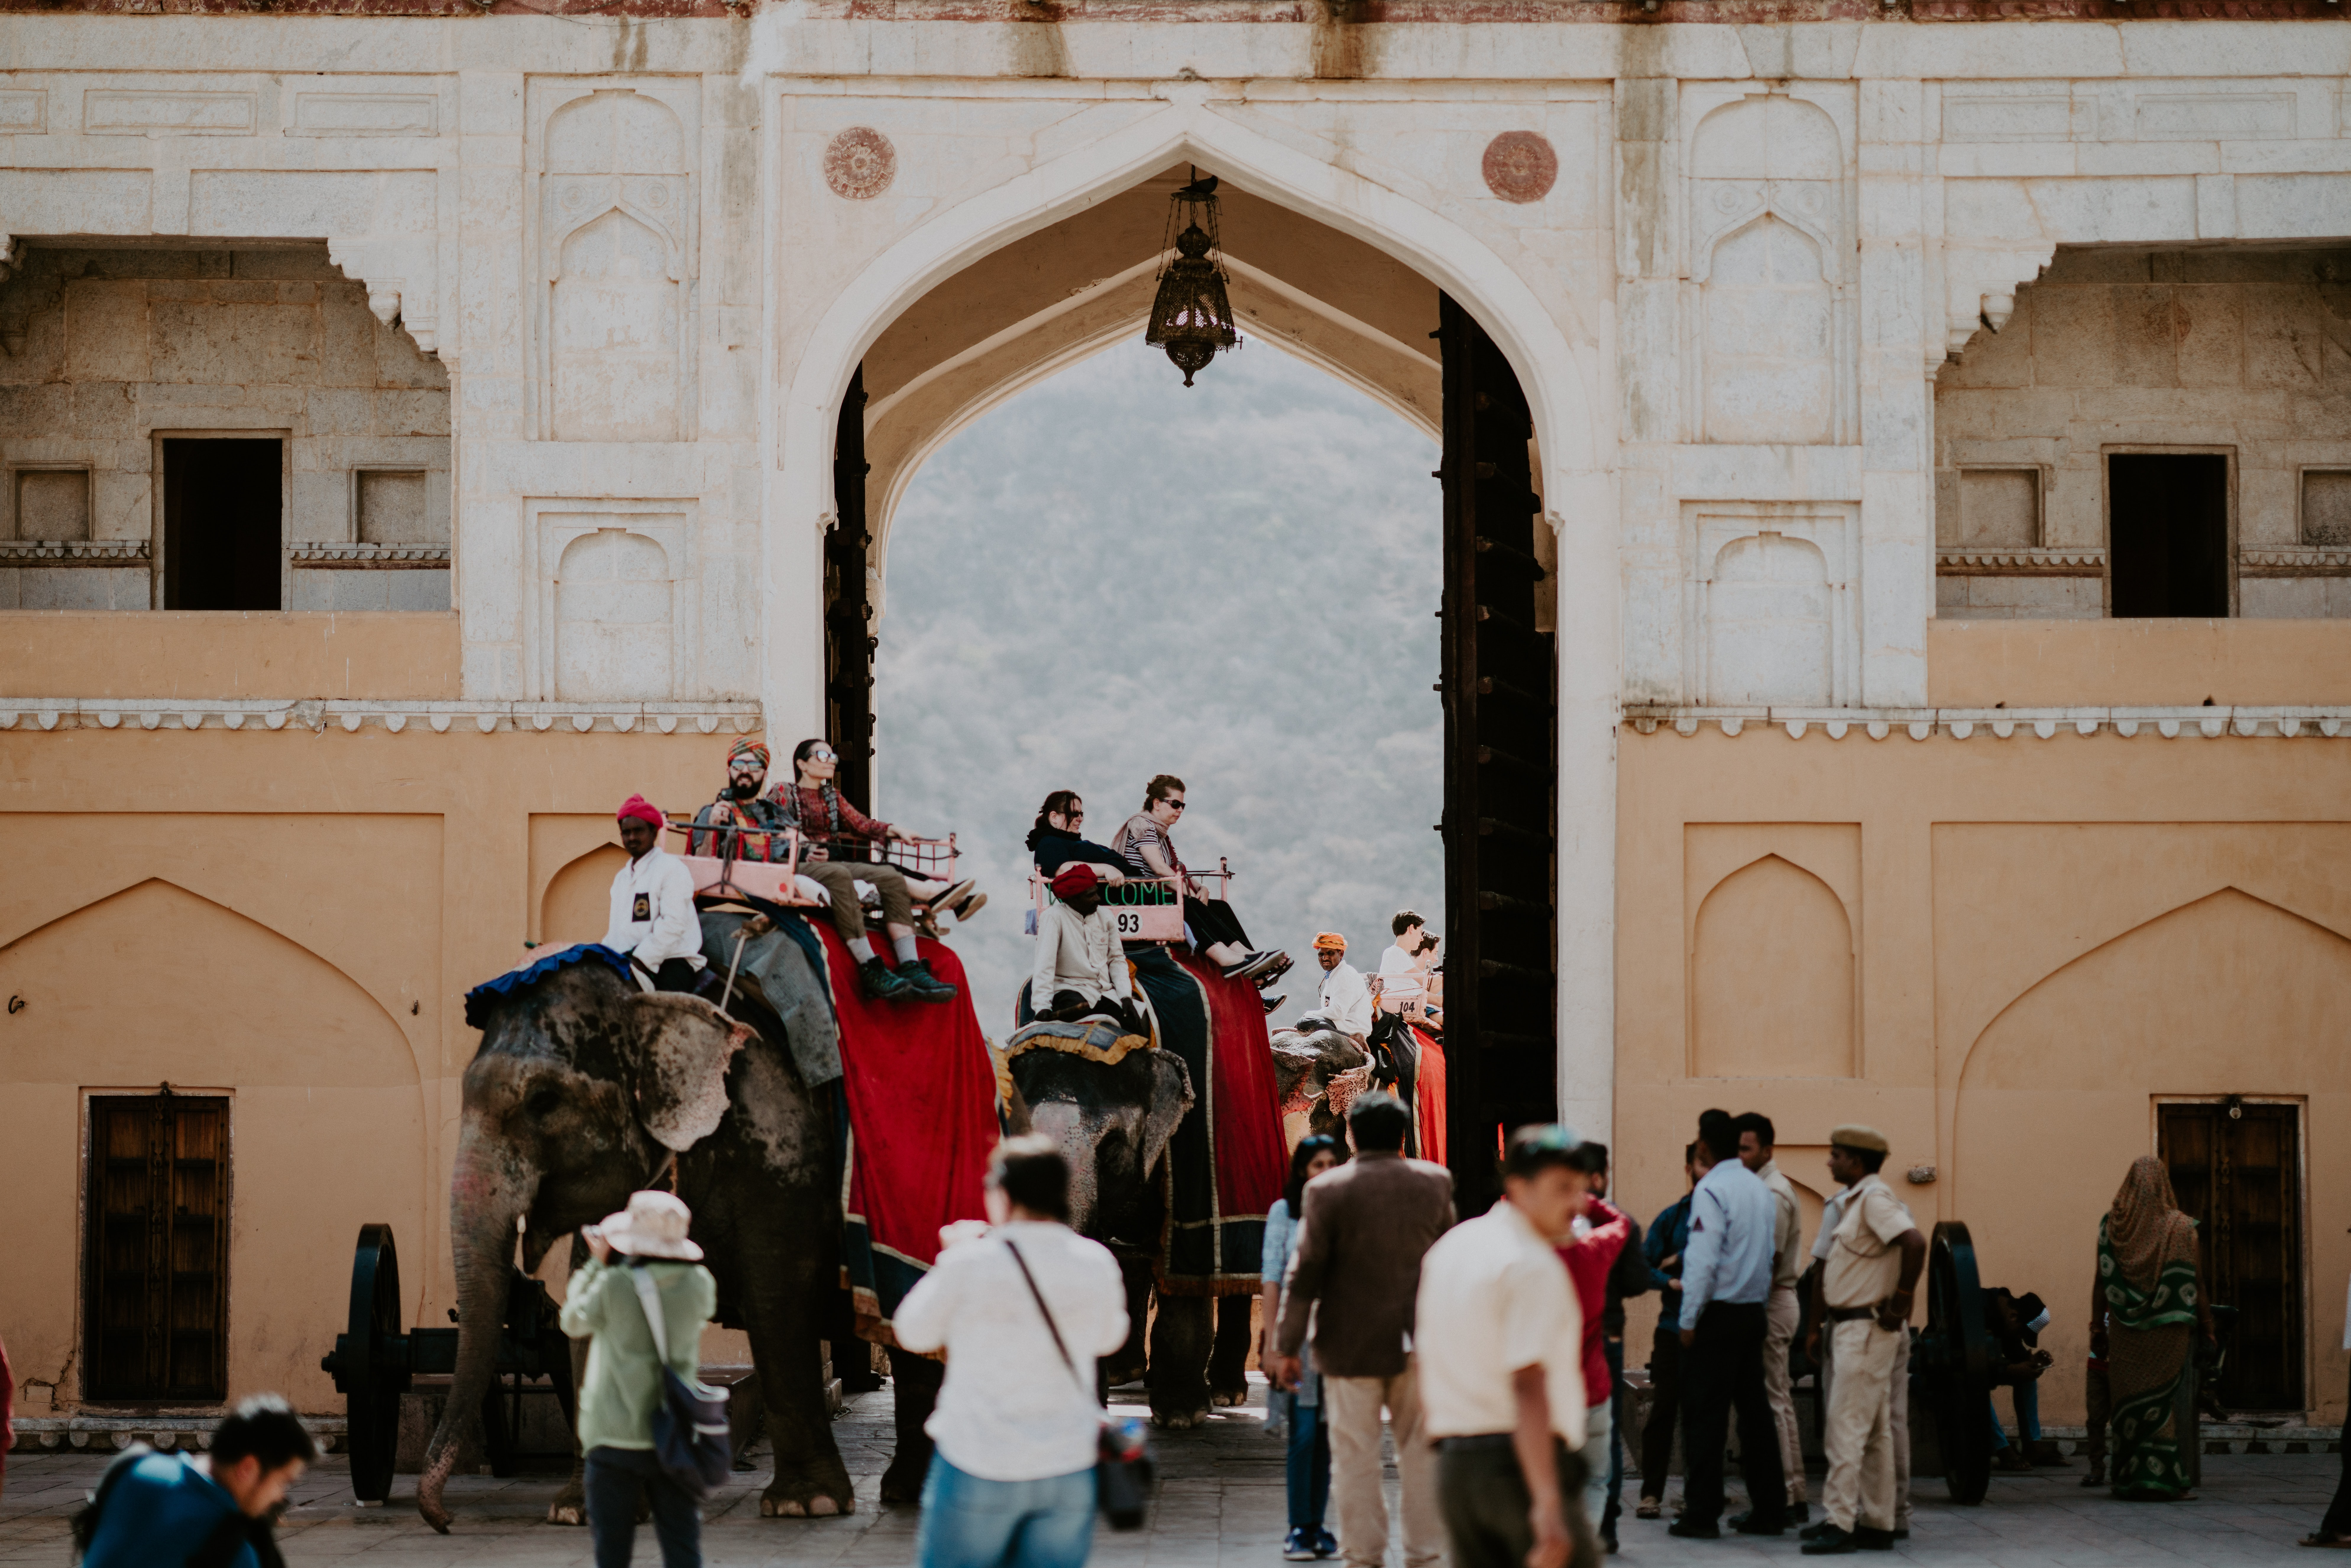 group of people near arch gate